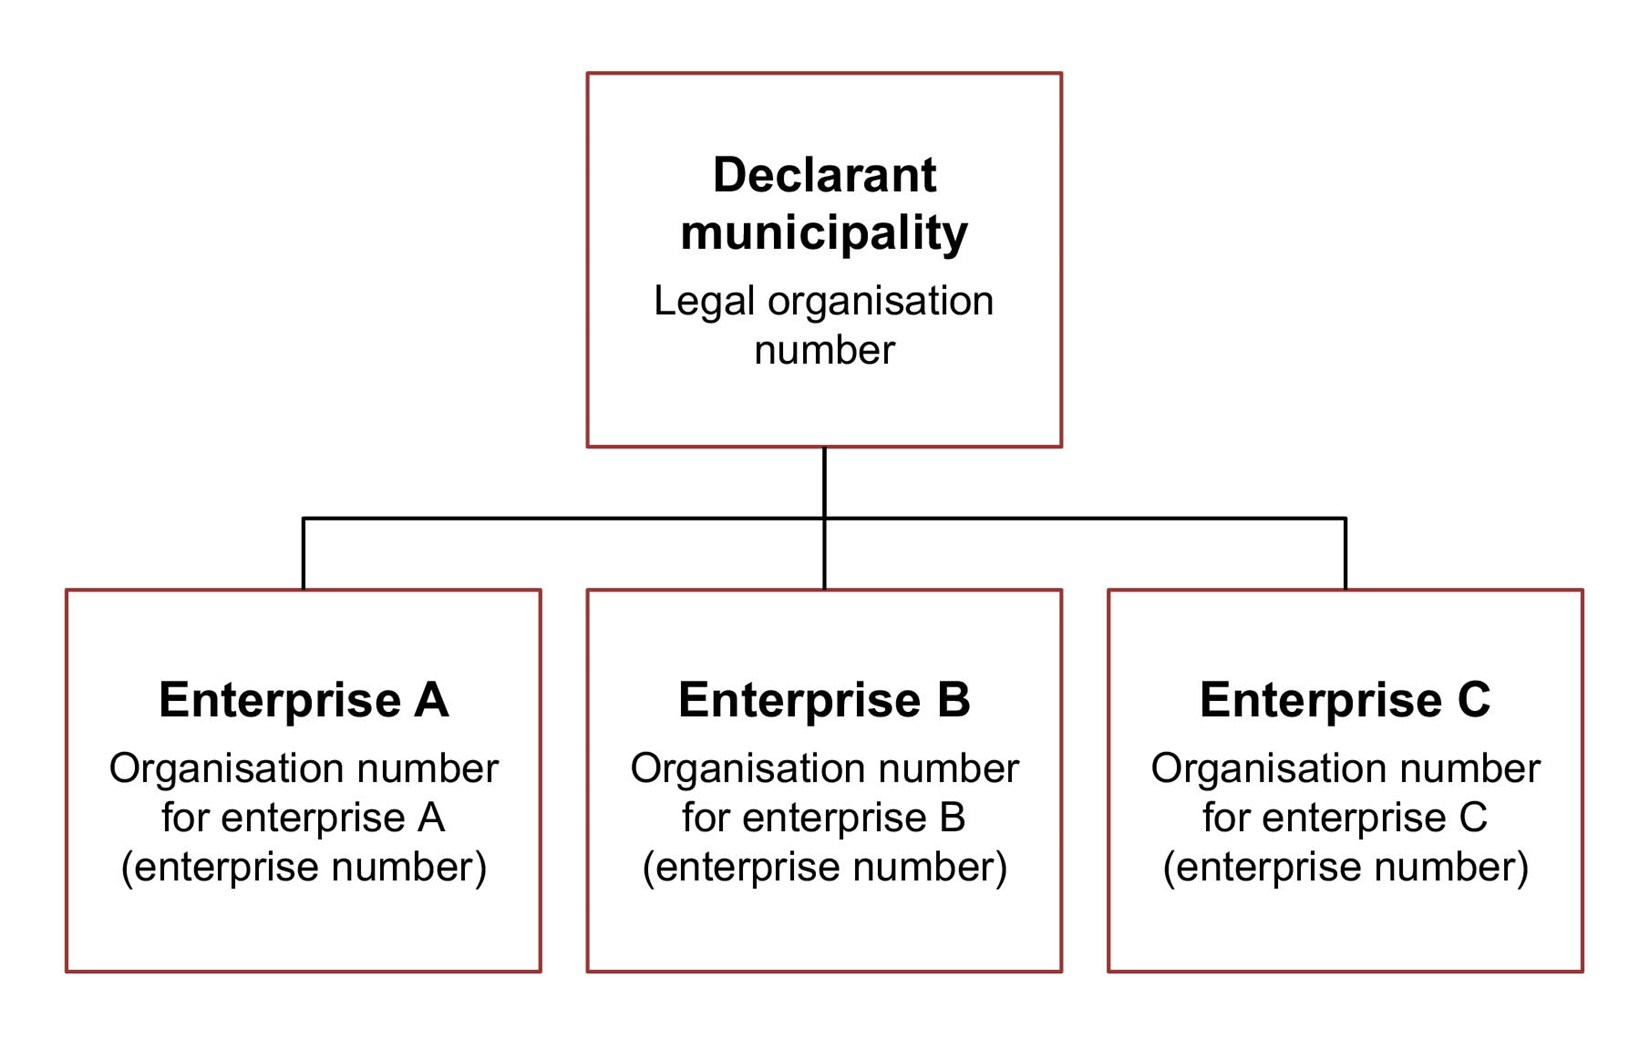 Diagram. Specify the legal organisation number for the declarant municipality. Specify the organisation number for enterprise, for enterprises A, B and C. The text in the article explains this in more detail.